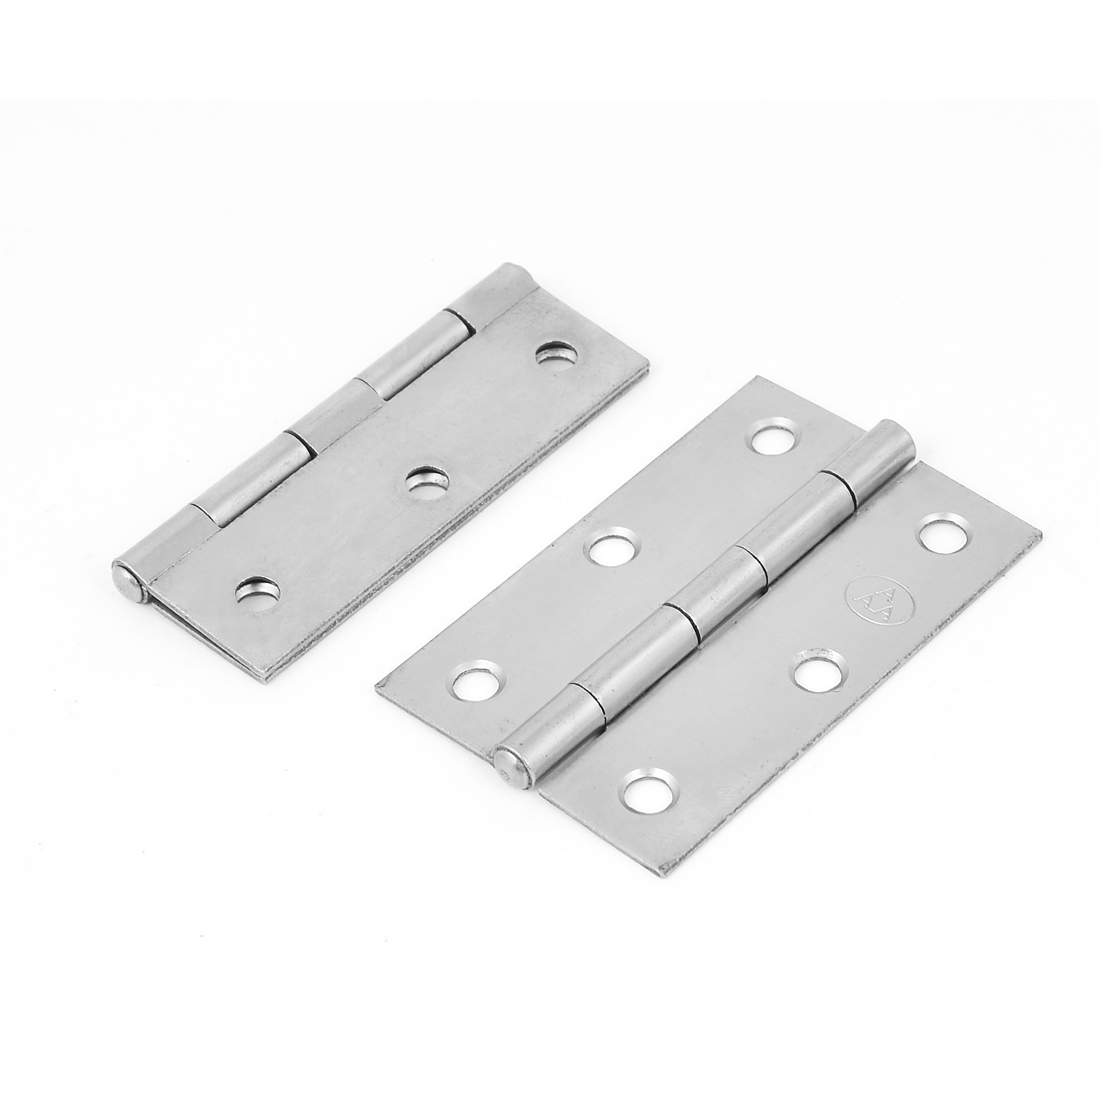 80mmx50mm Metal Rectangular Folding Closet Cabinet Door Butt Hinge 2pcs